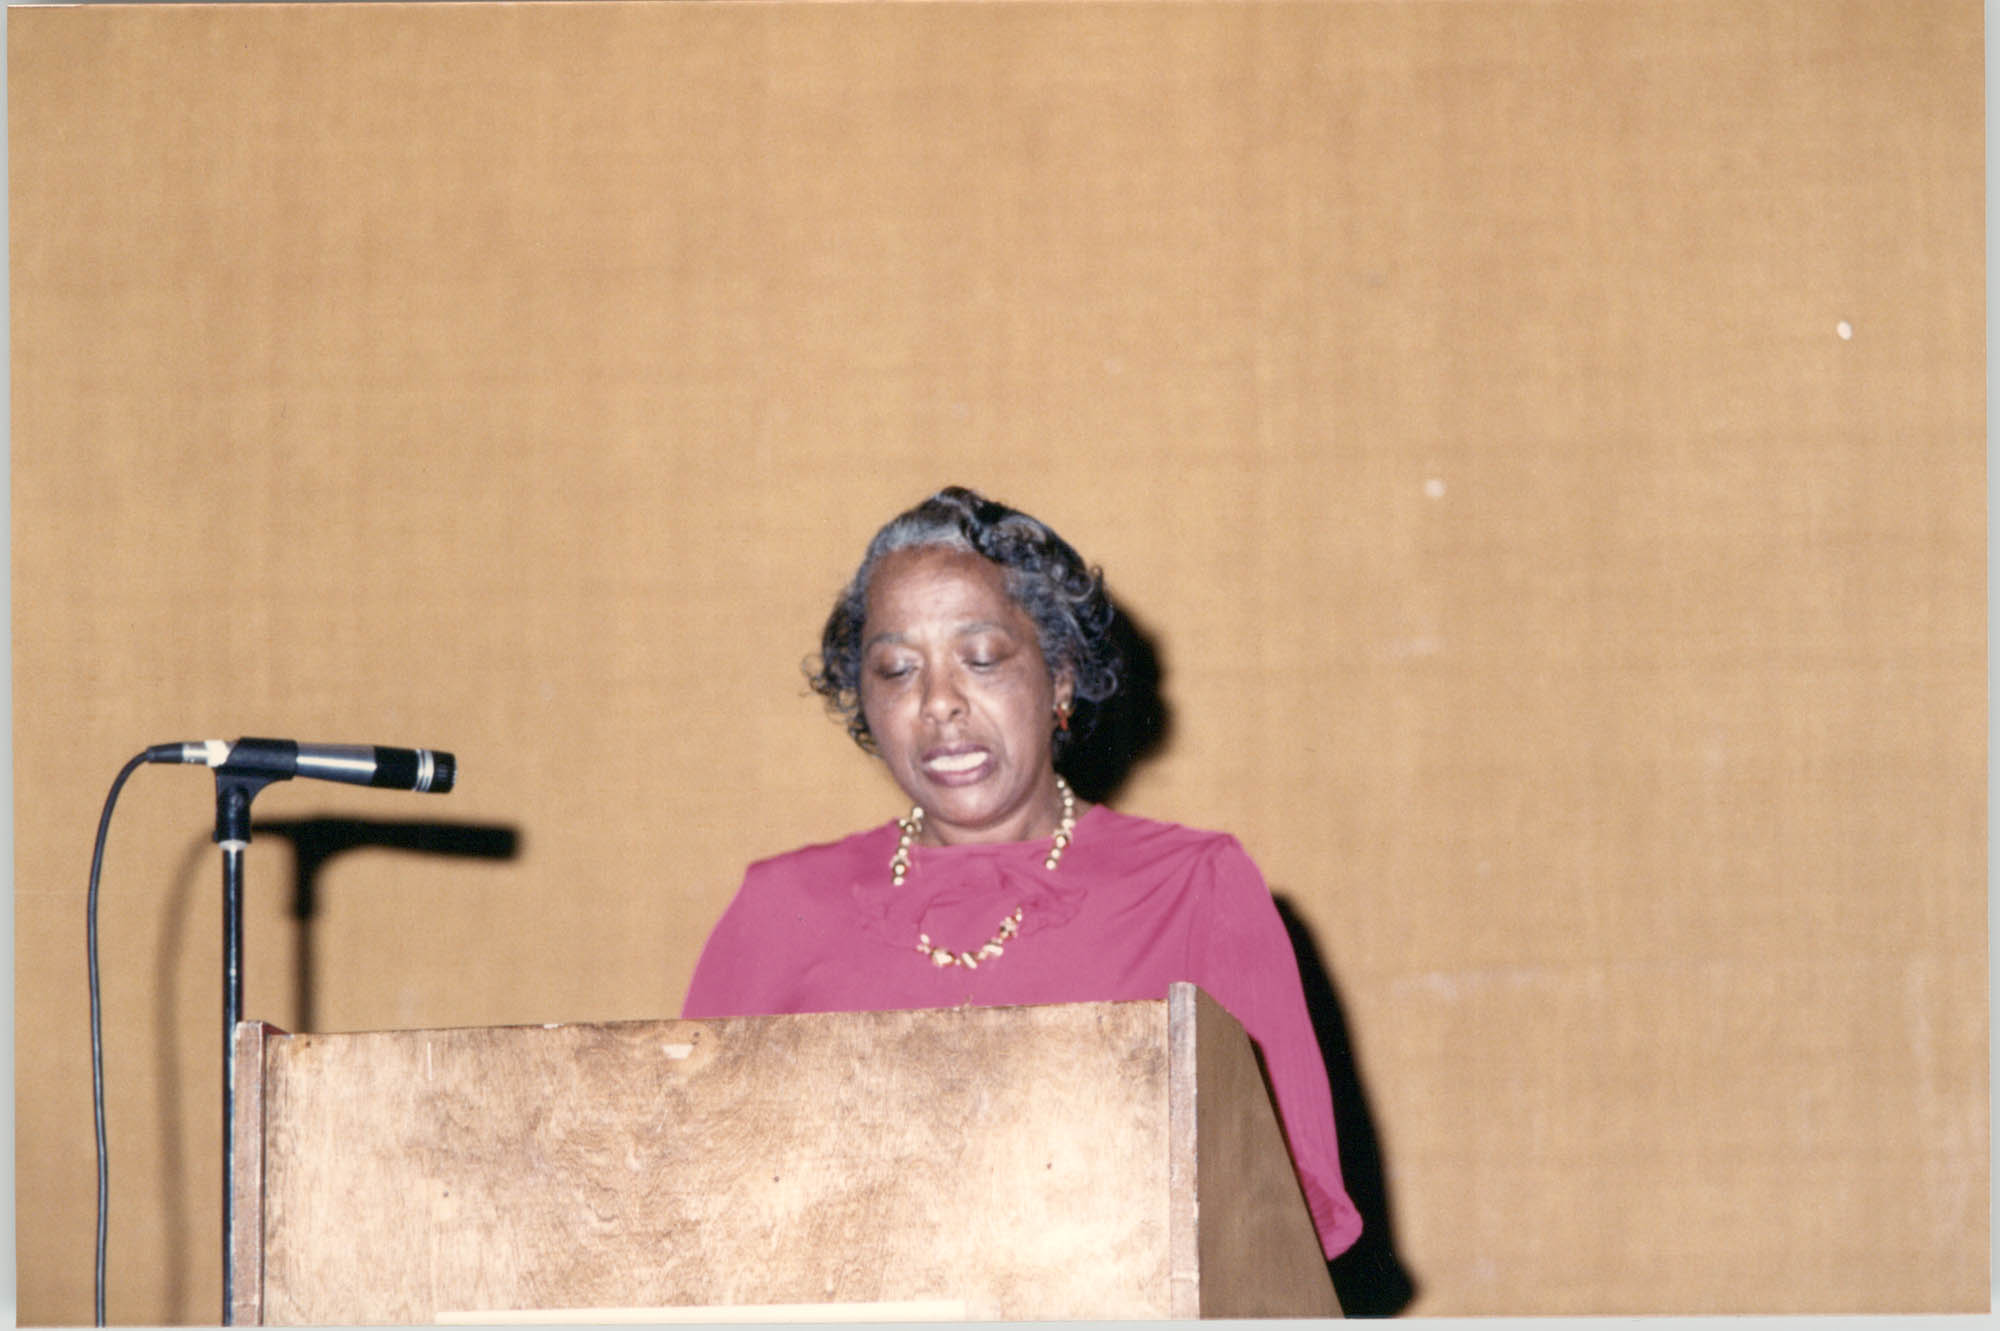 Photograph of a Woman at a College of Charleston Event